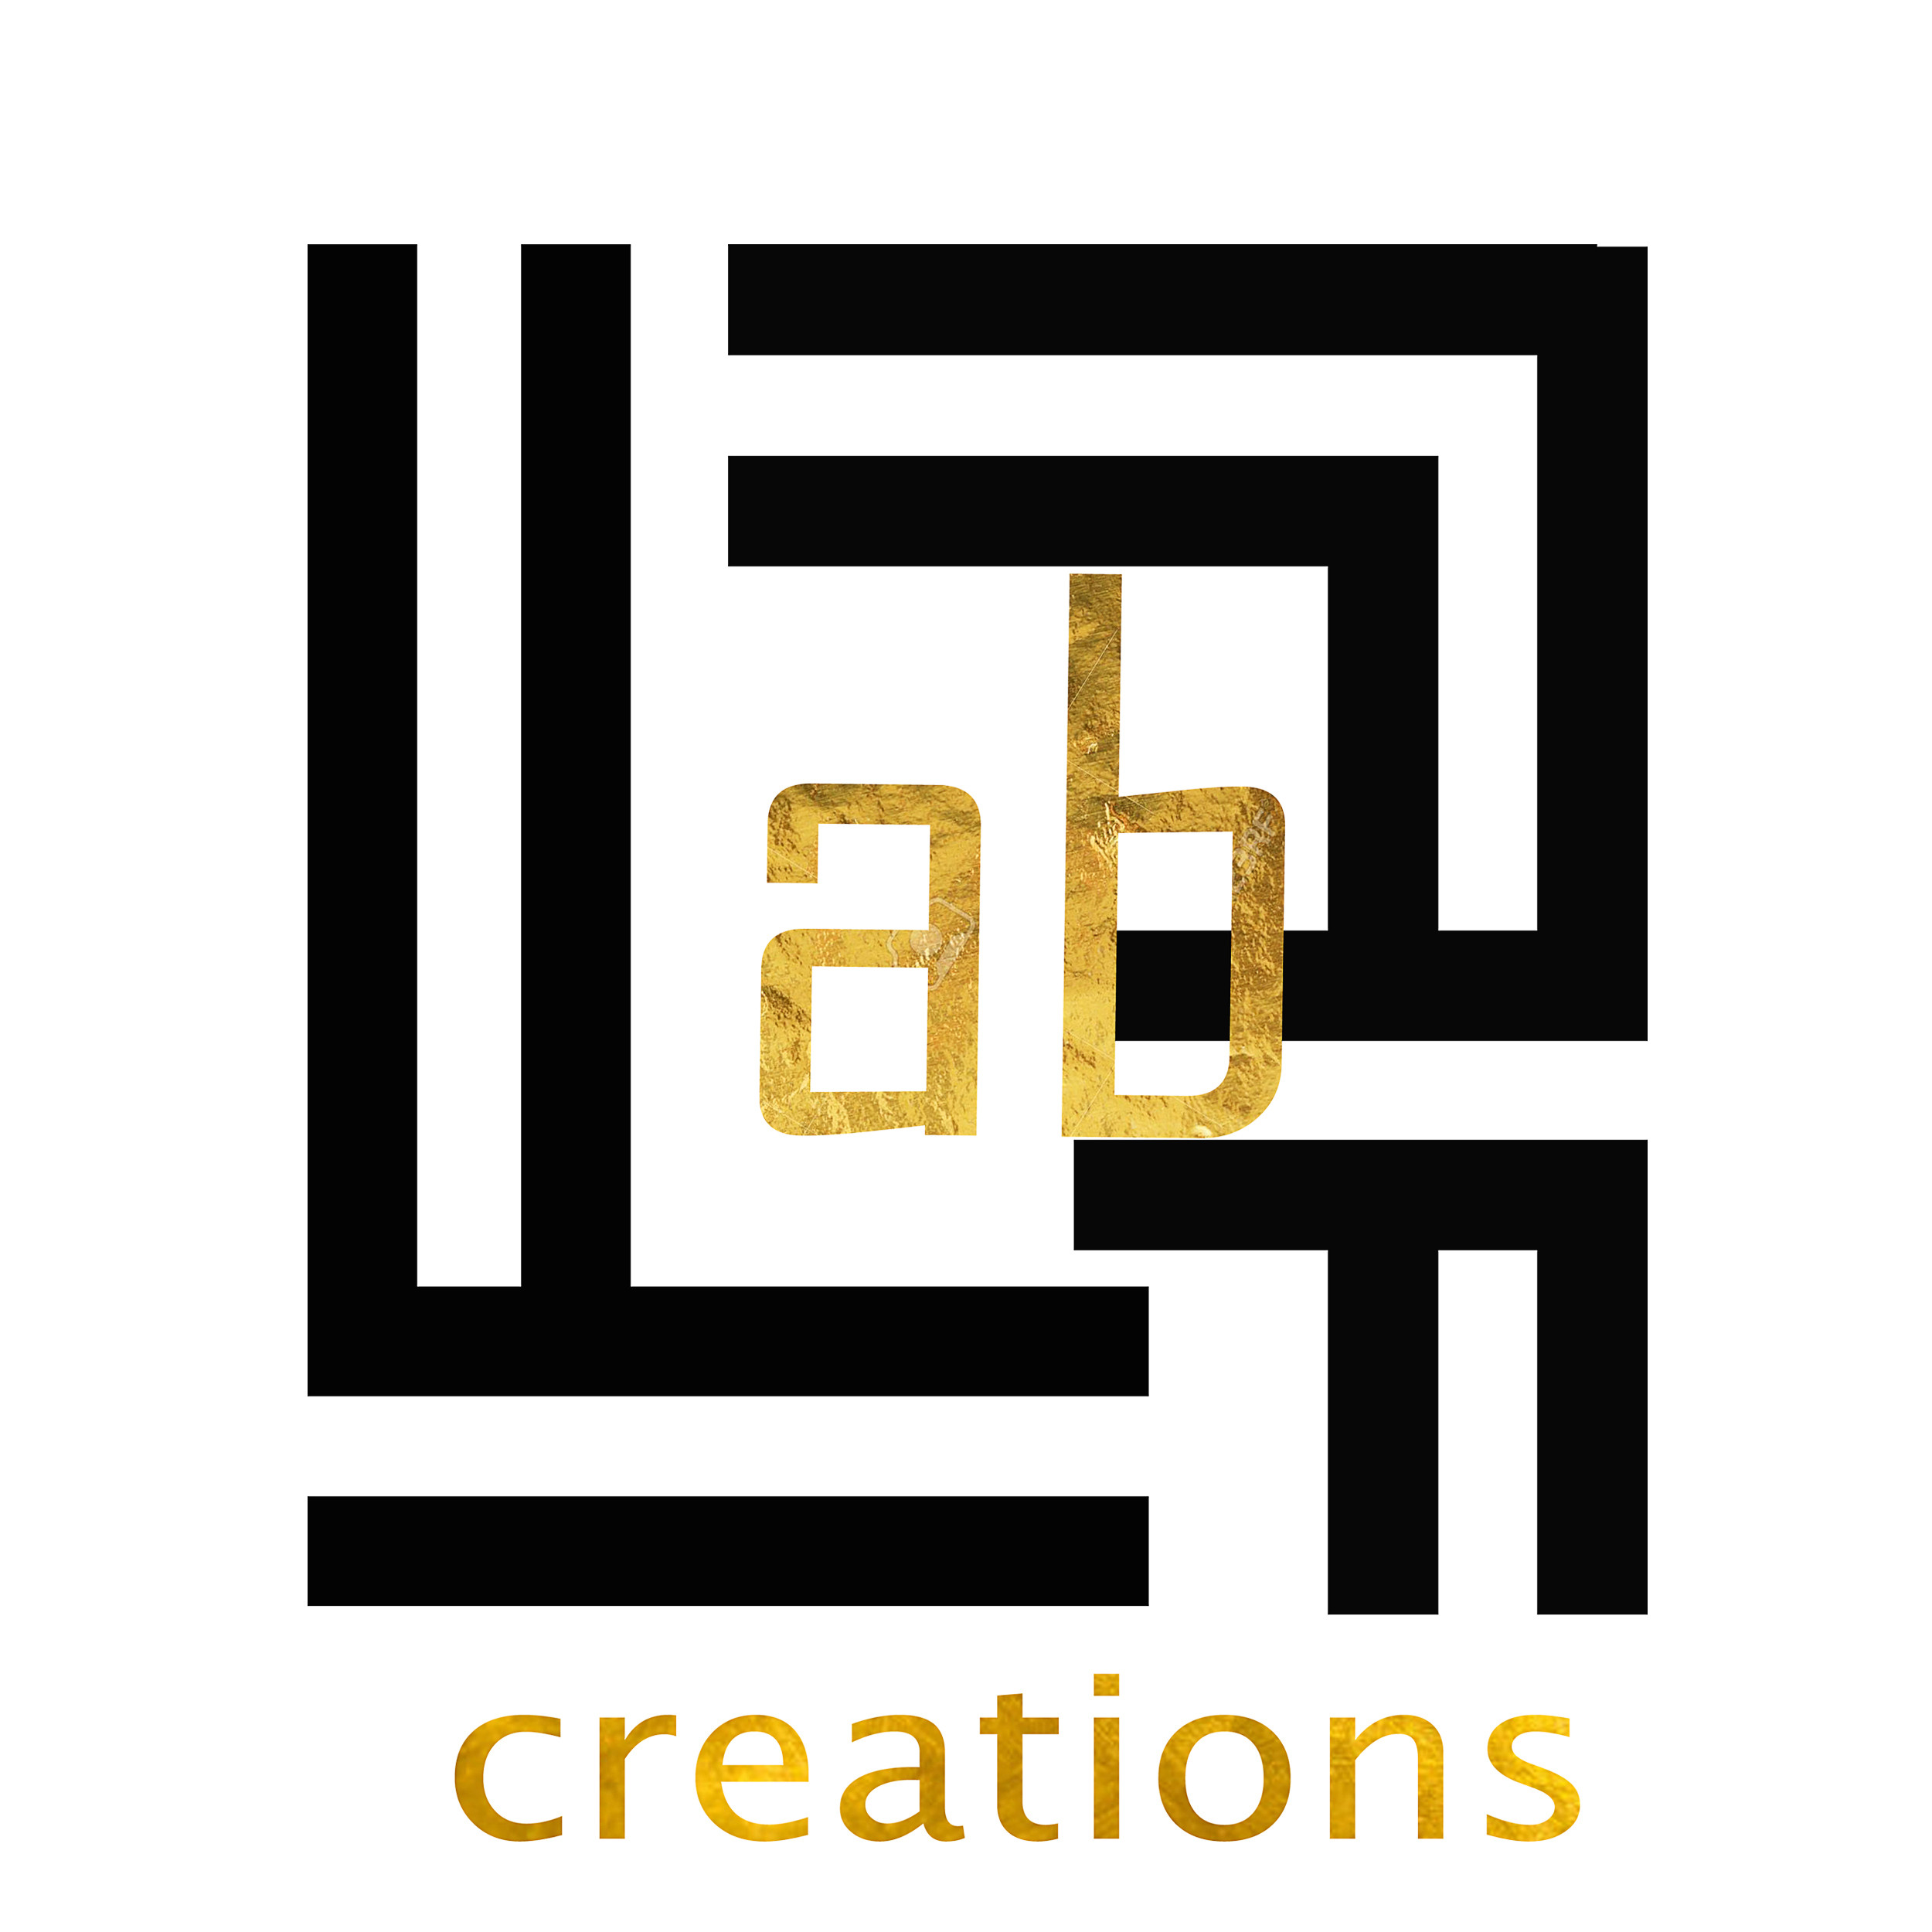 LABFcreations's profile picture